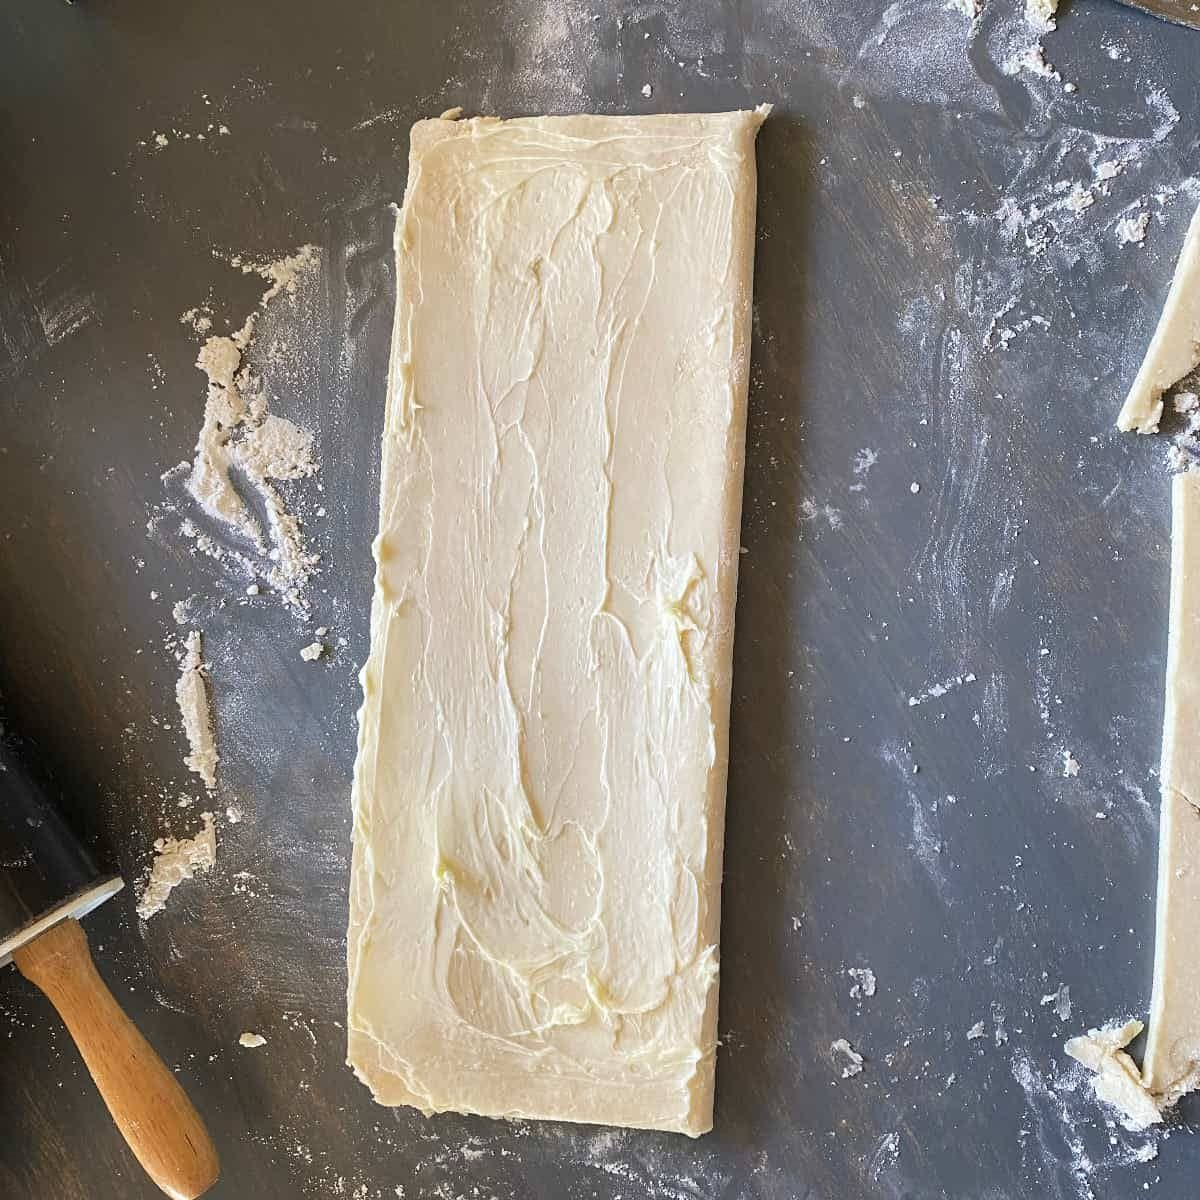 Folded puff pastry dough with softened butter spread on top for laminating